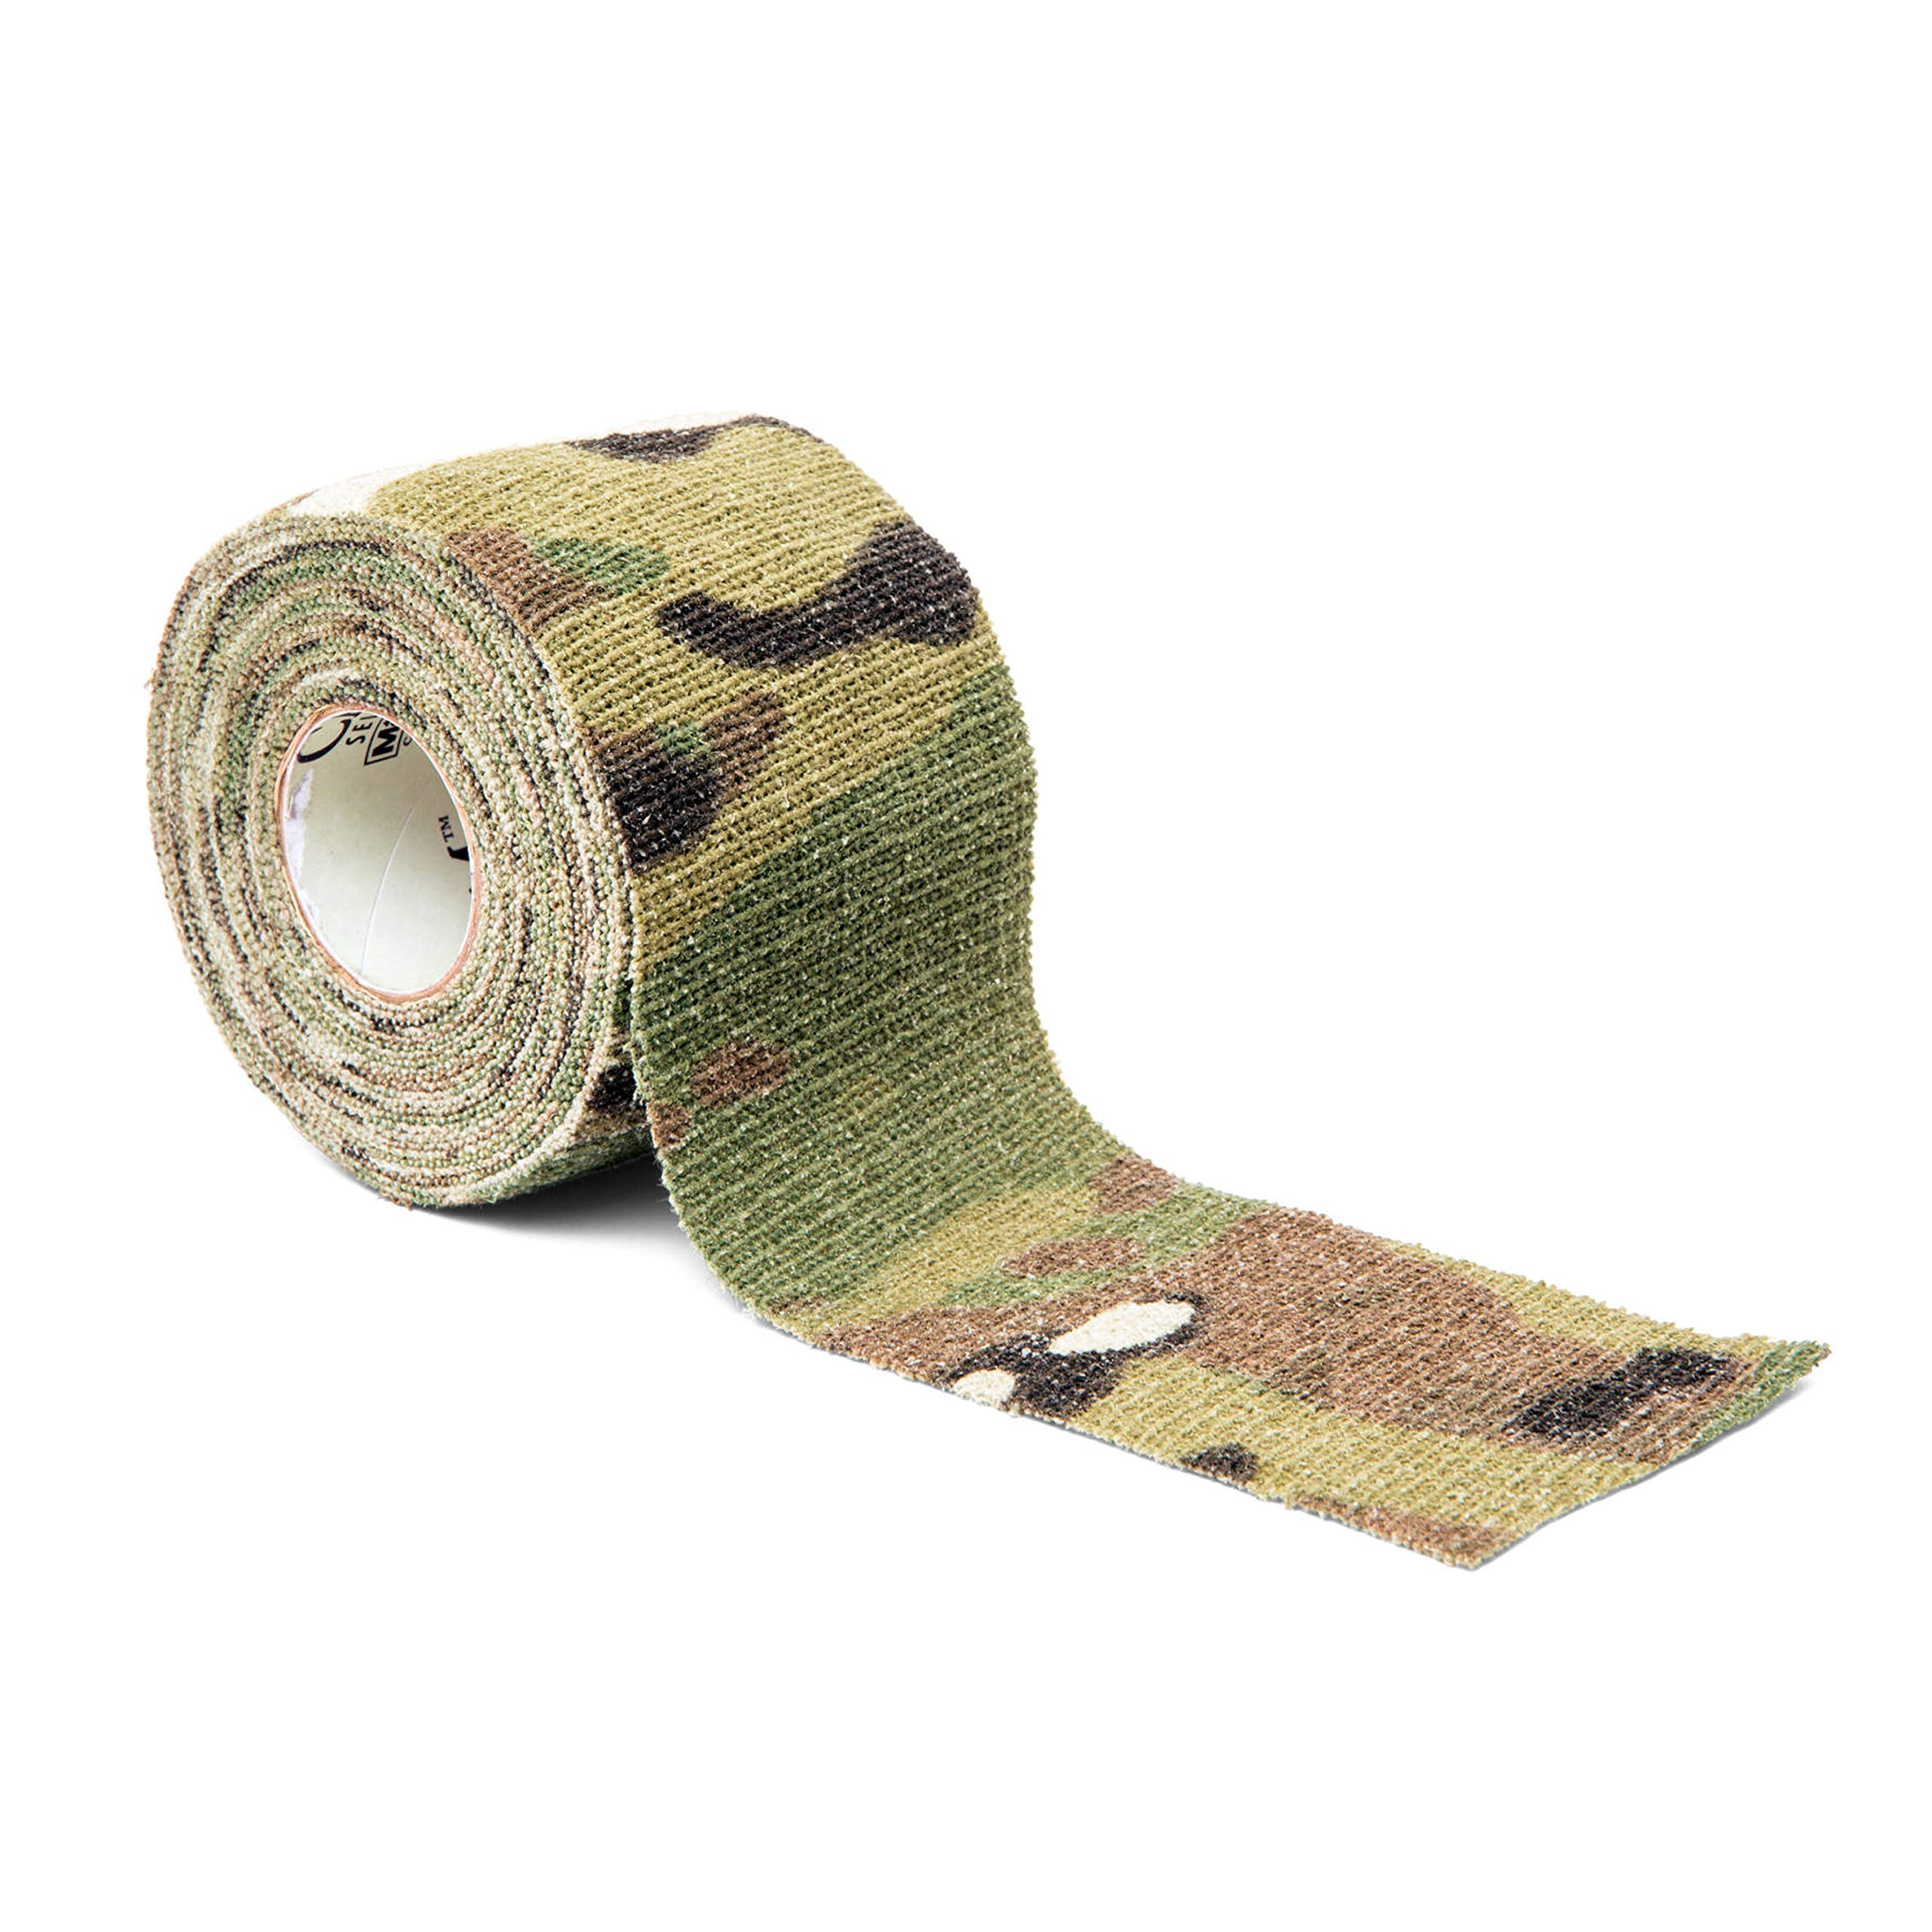 GEAR AID Camo Form Self-Cling and Reusable Camouflage Wrap, Multicam, 2'' x 144'' Roll by GEAR AID